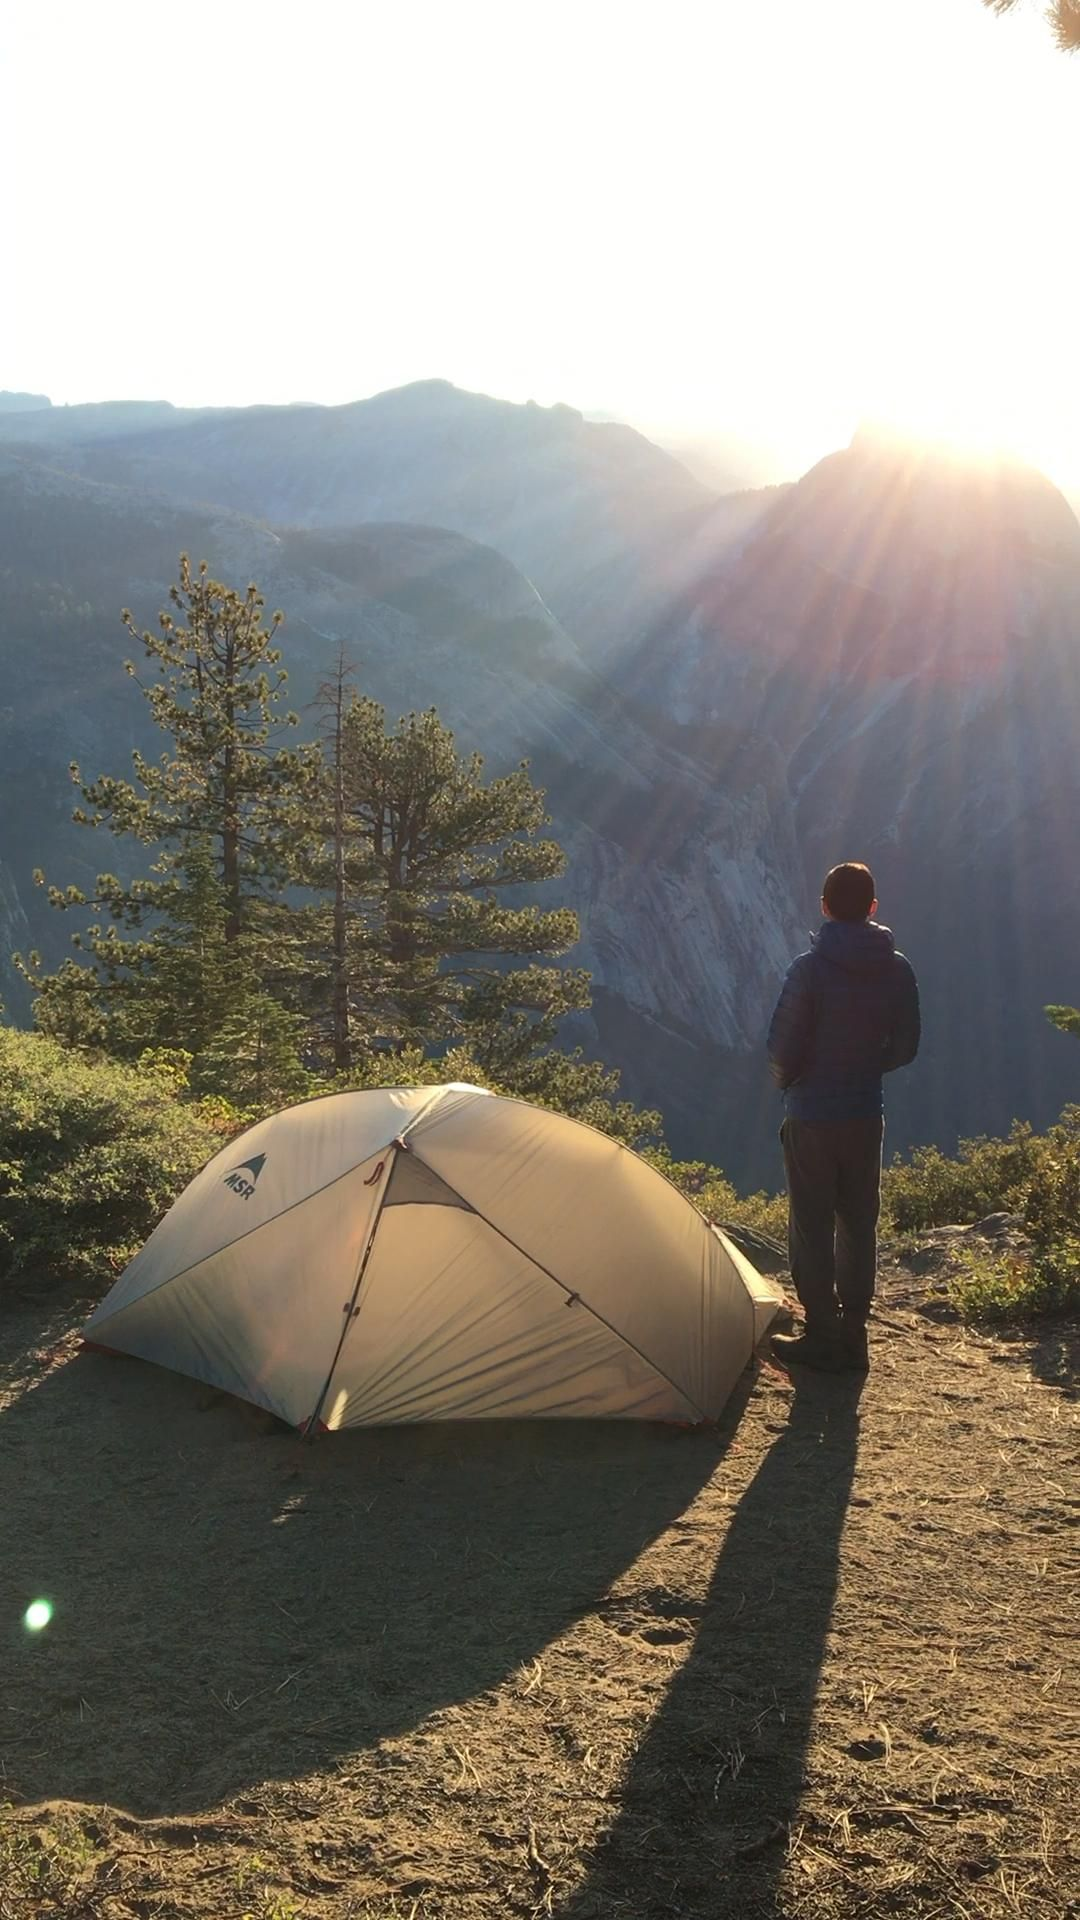 In our post we review 3 of our favorite light and ultralight backpacking tents.